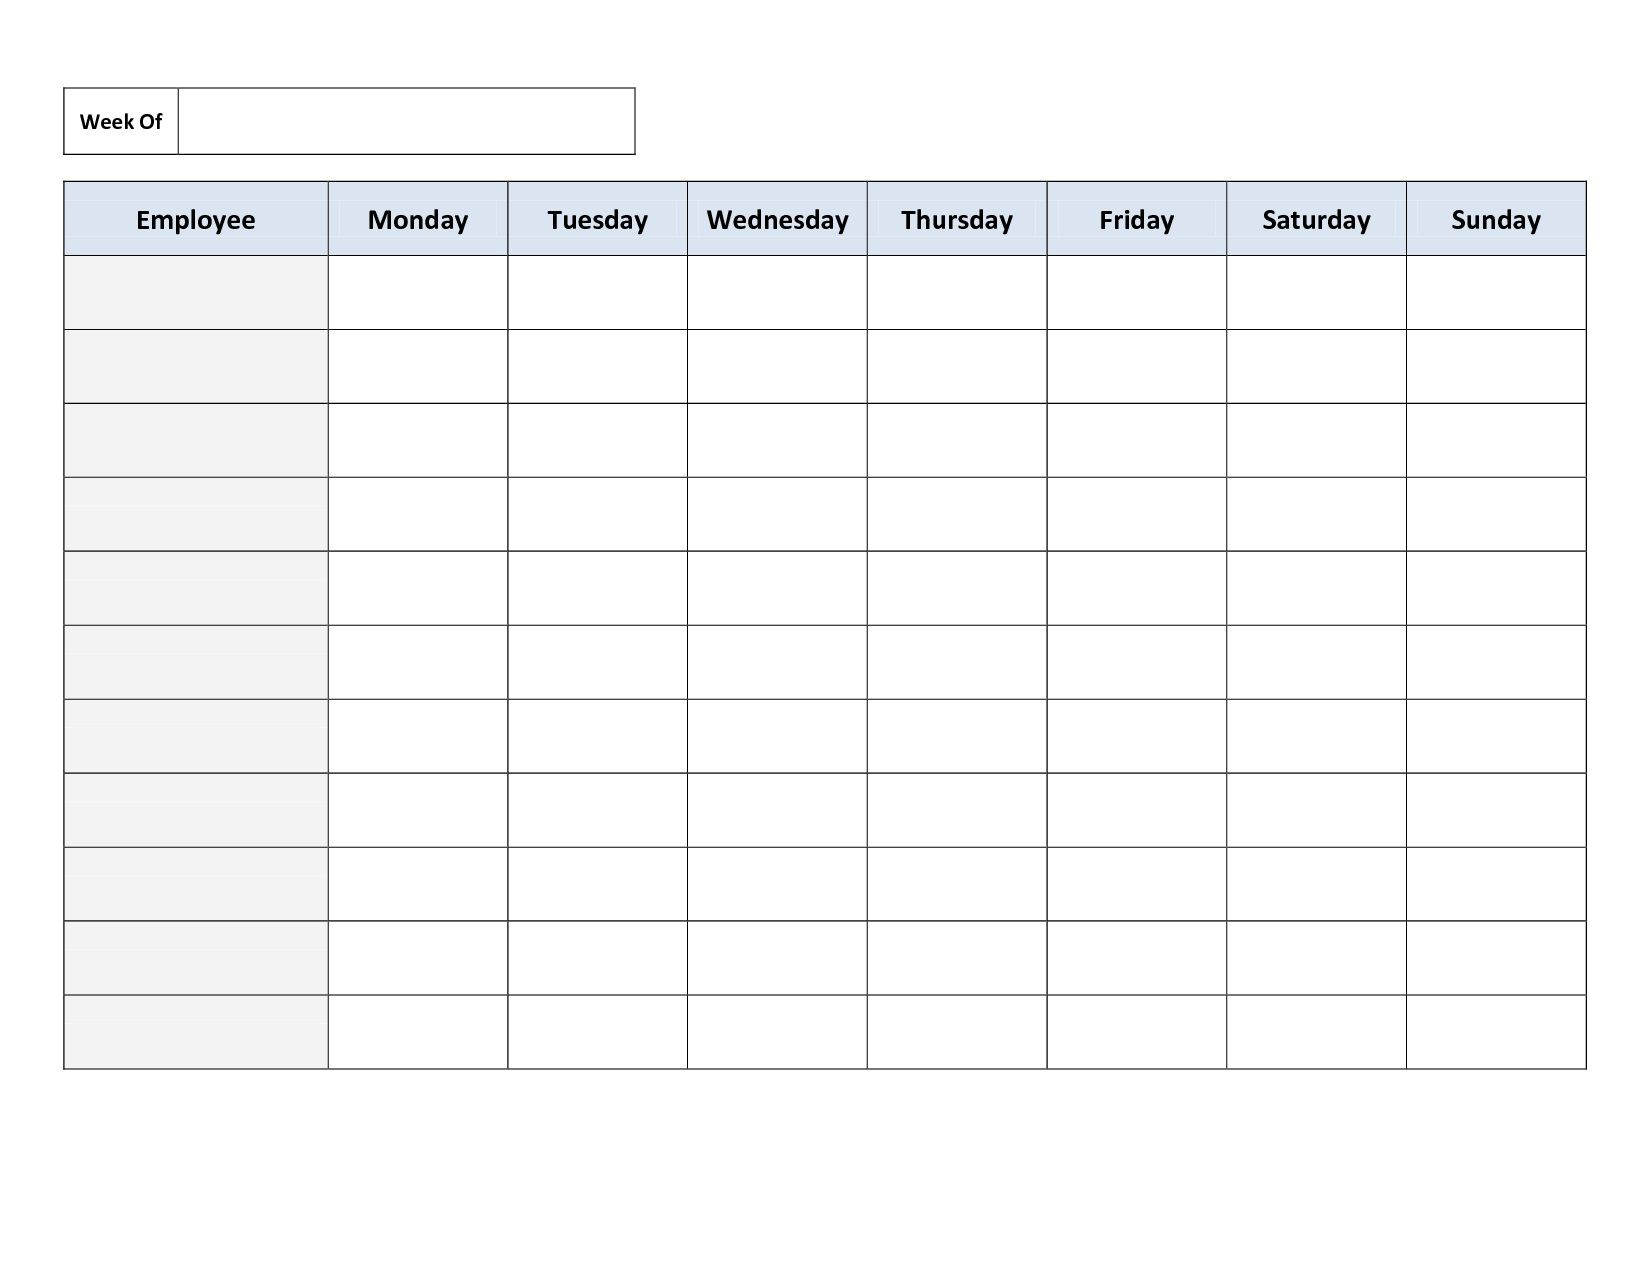 002 Amazing Free Employee Scheduling Template Idea  Templates Weekly Work Schedule Printable LunchFull